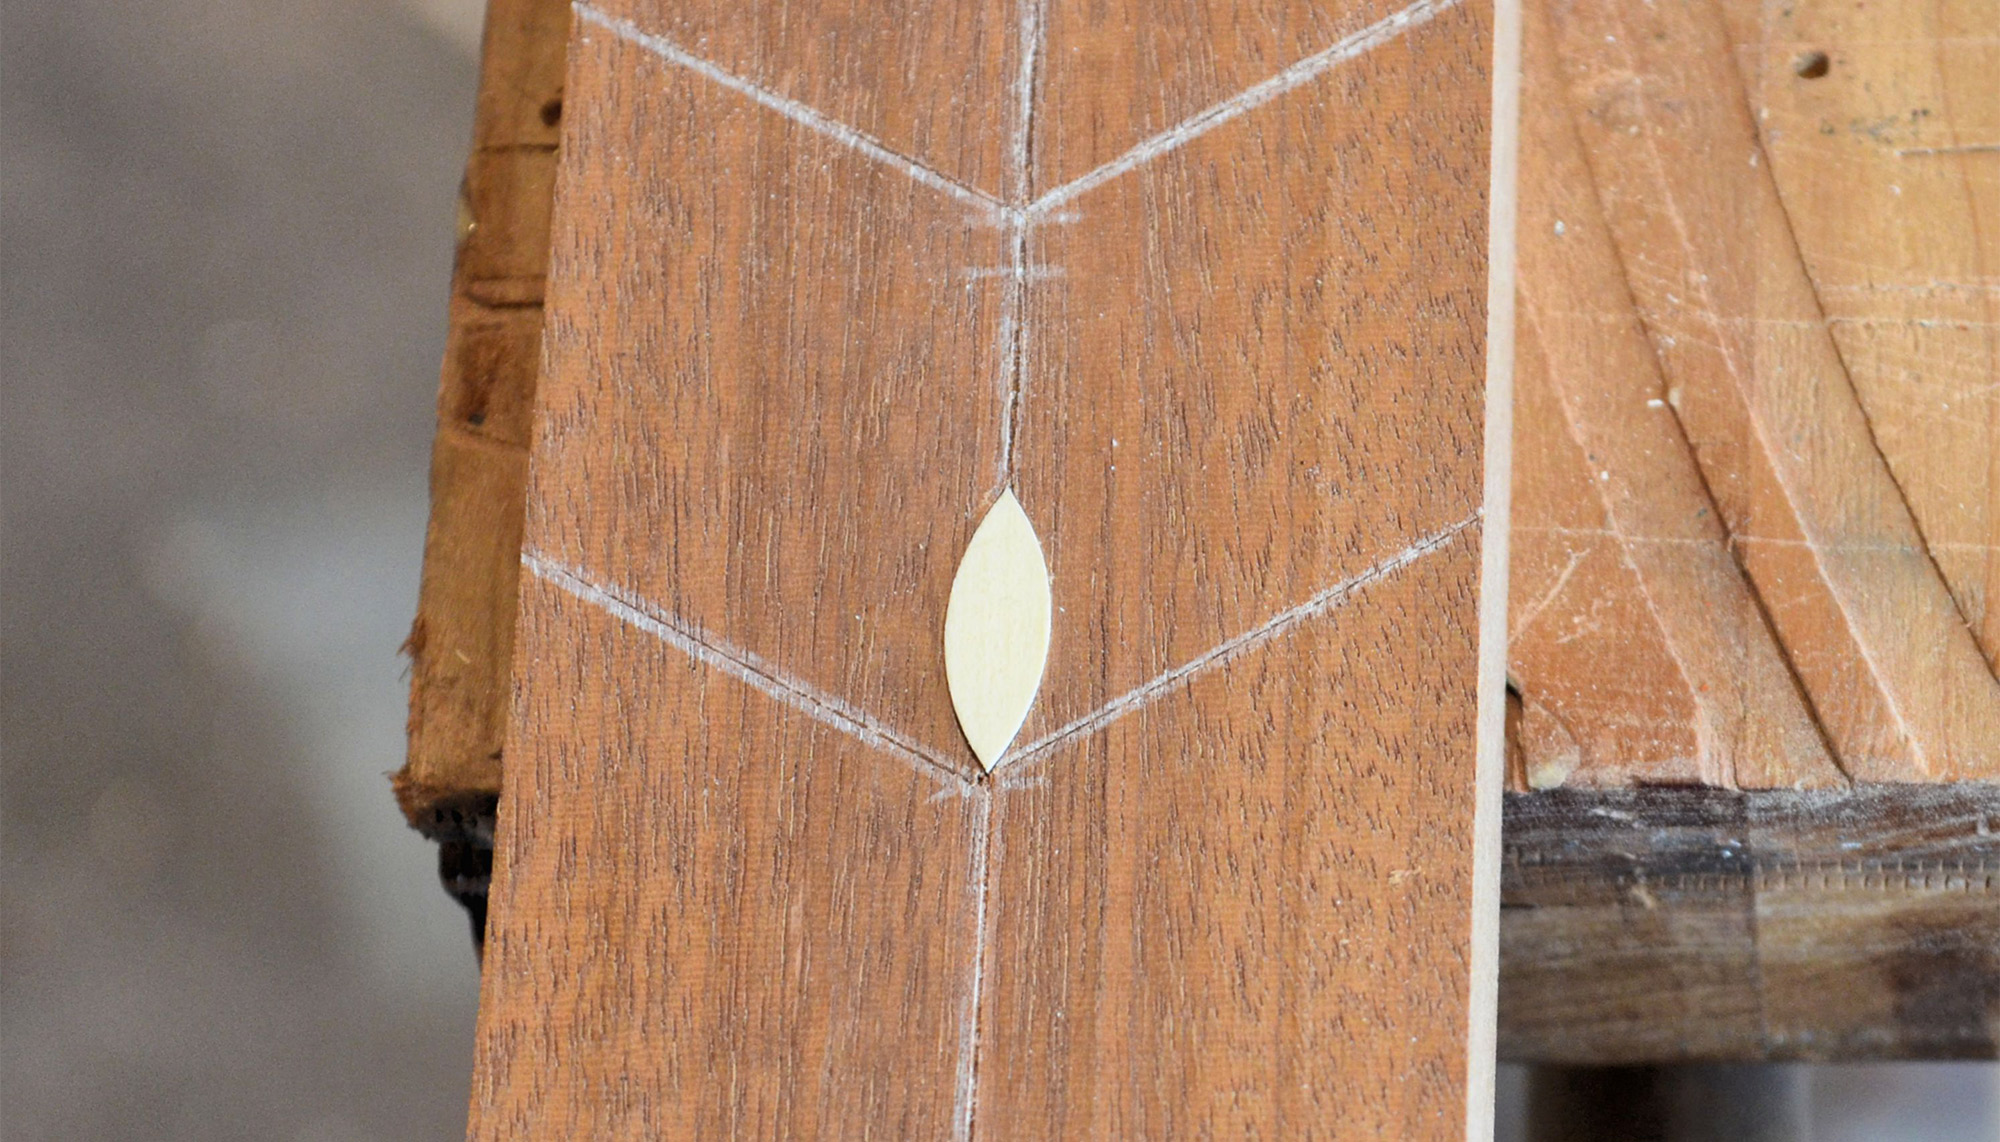 Center leaf inlaid into the pocket